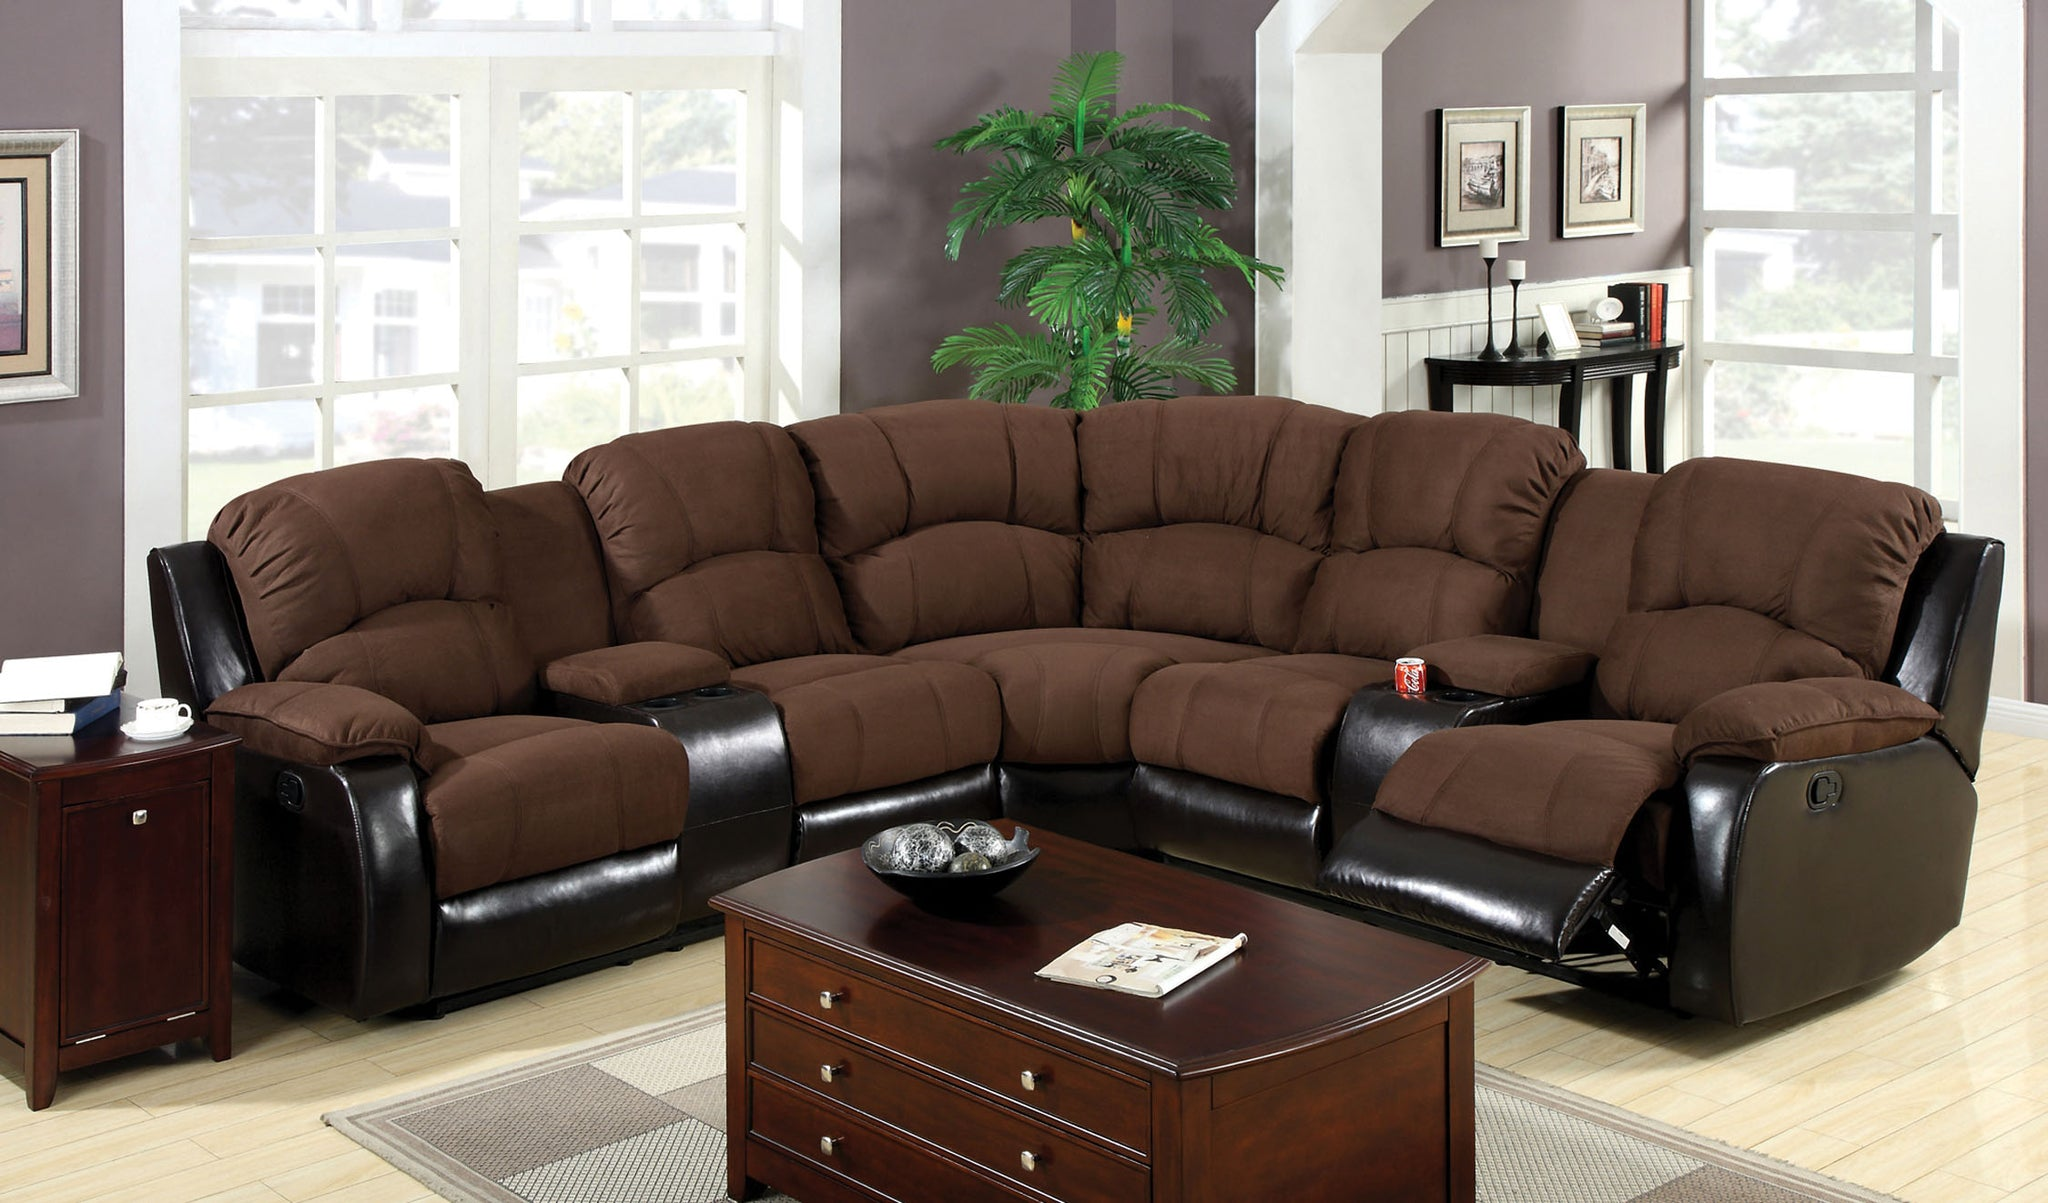 Rina Contemporary Plush Leatherette Microfiber Sectional Recliner, Brown / Espresso